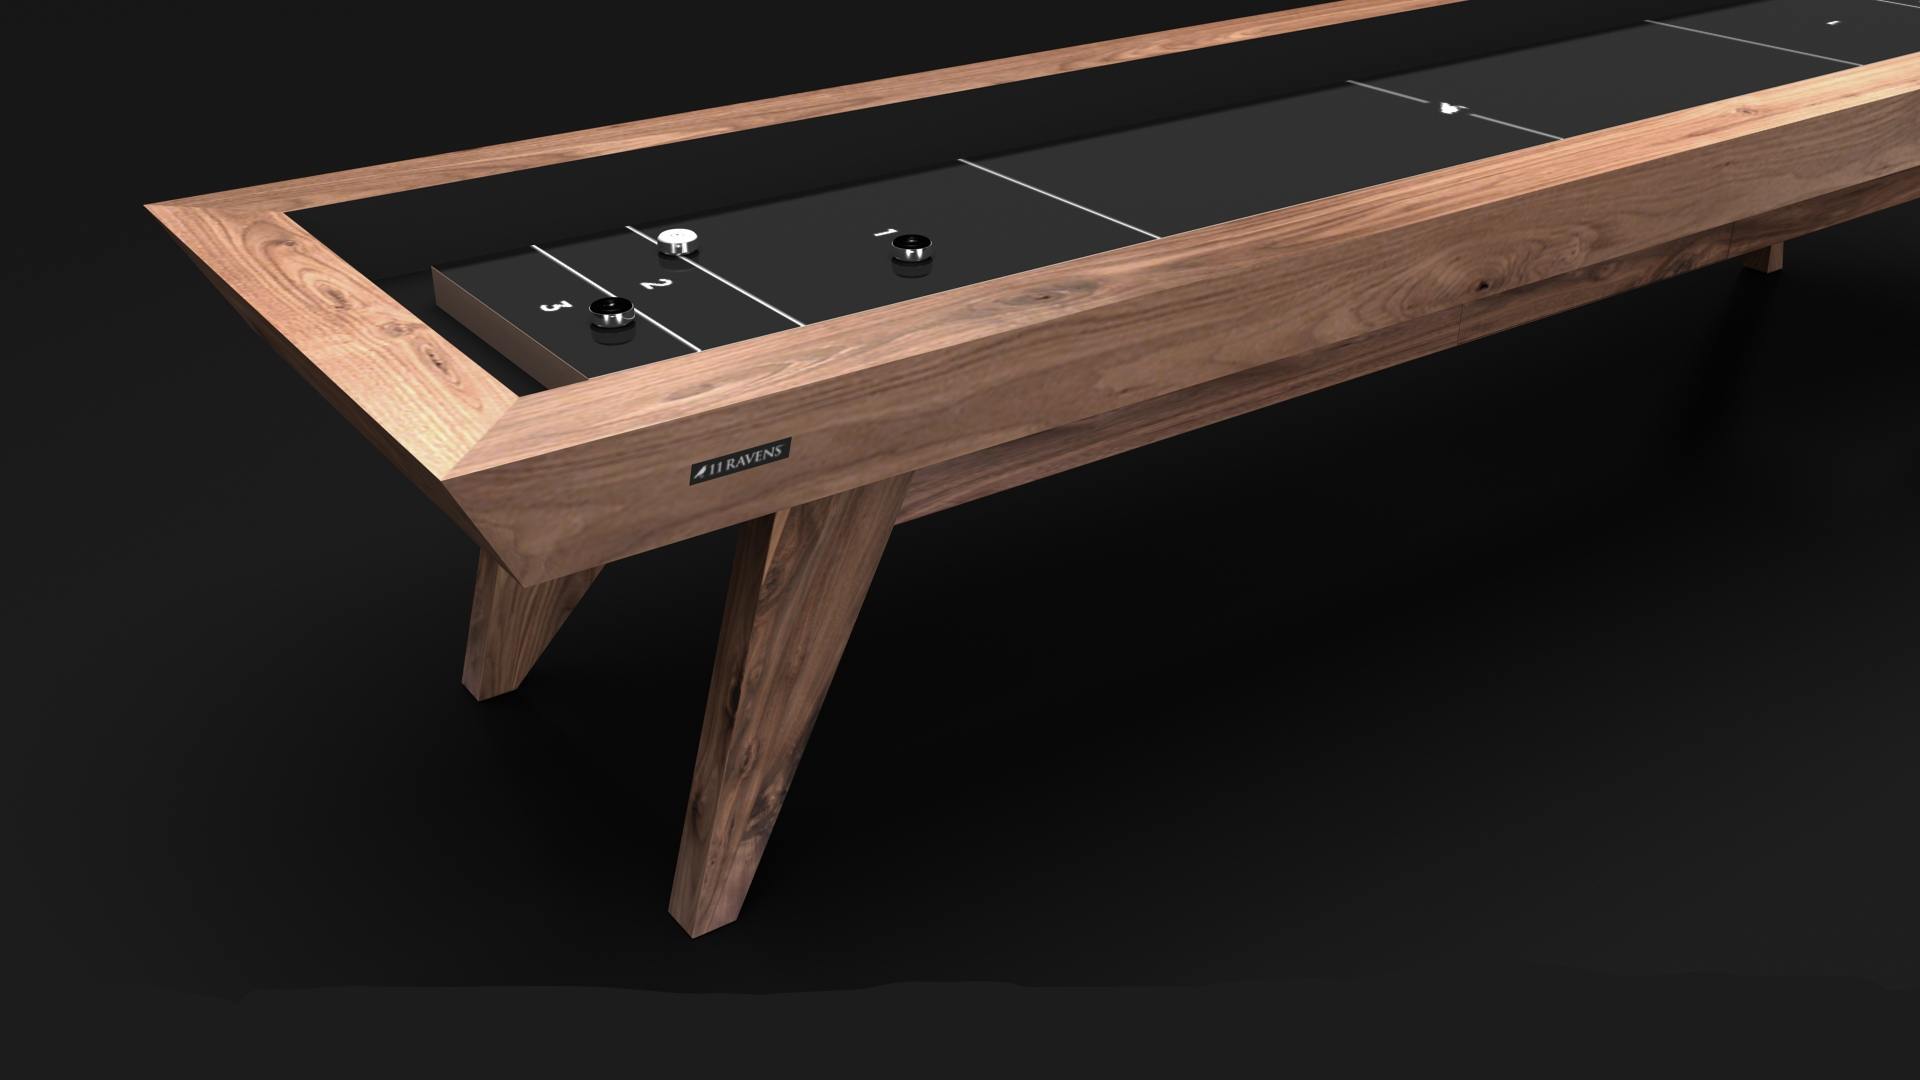 Trigon Shuffleboard in Walnut